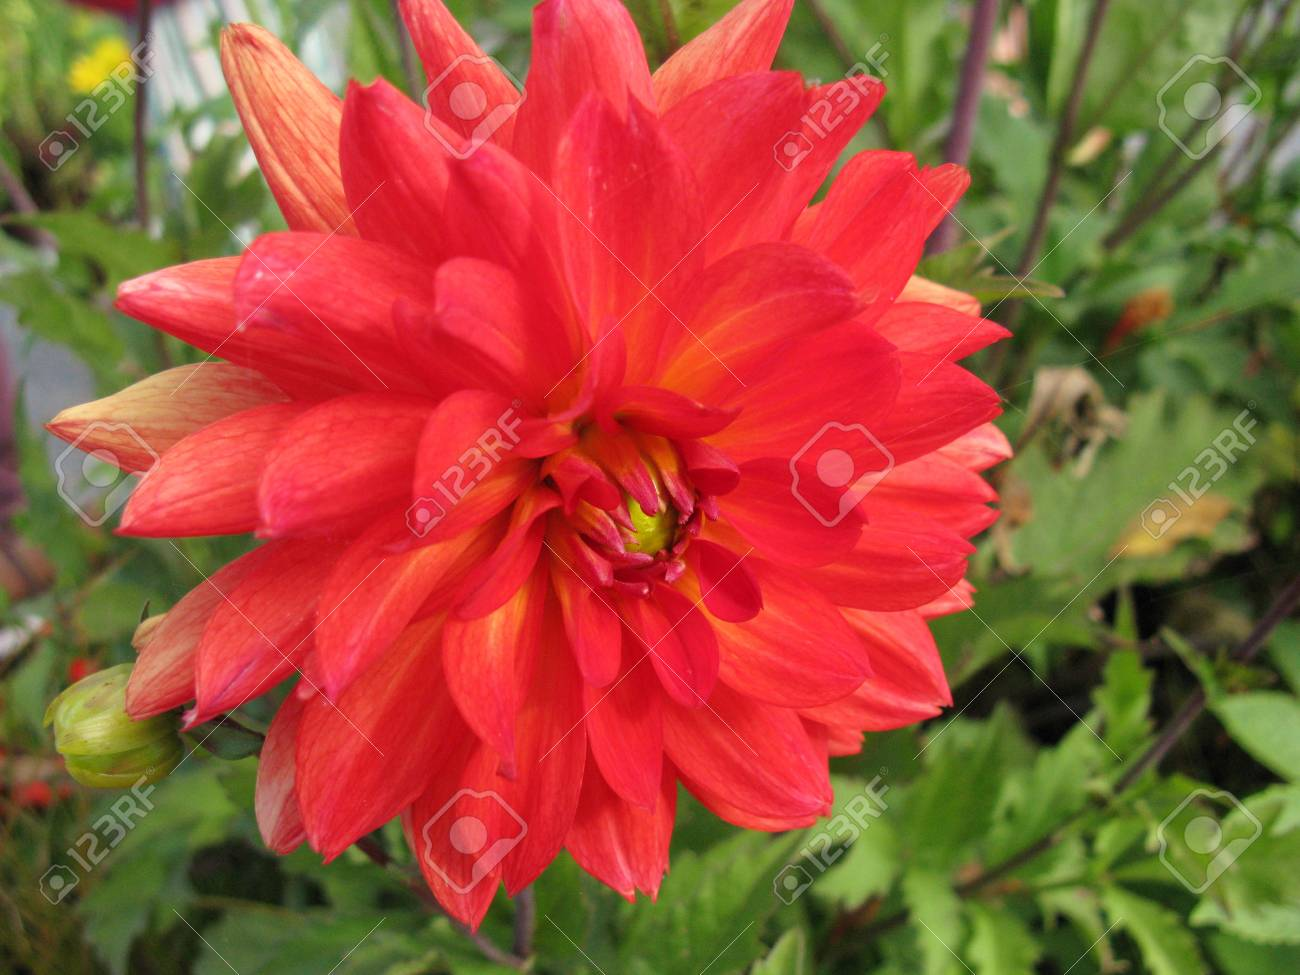 A close up of a red blooming dahlia flower Stock Photo - 14709612